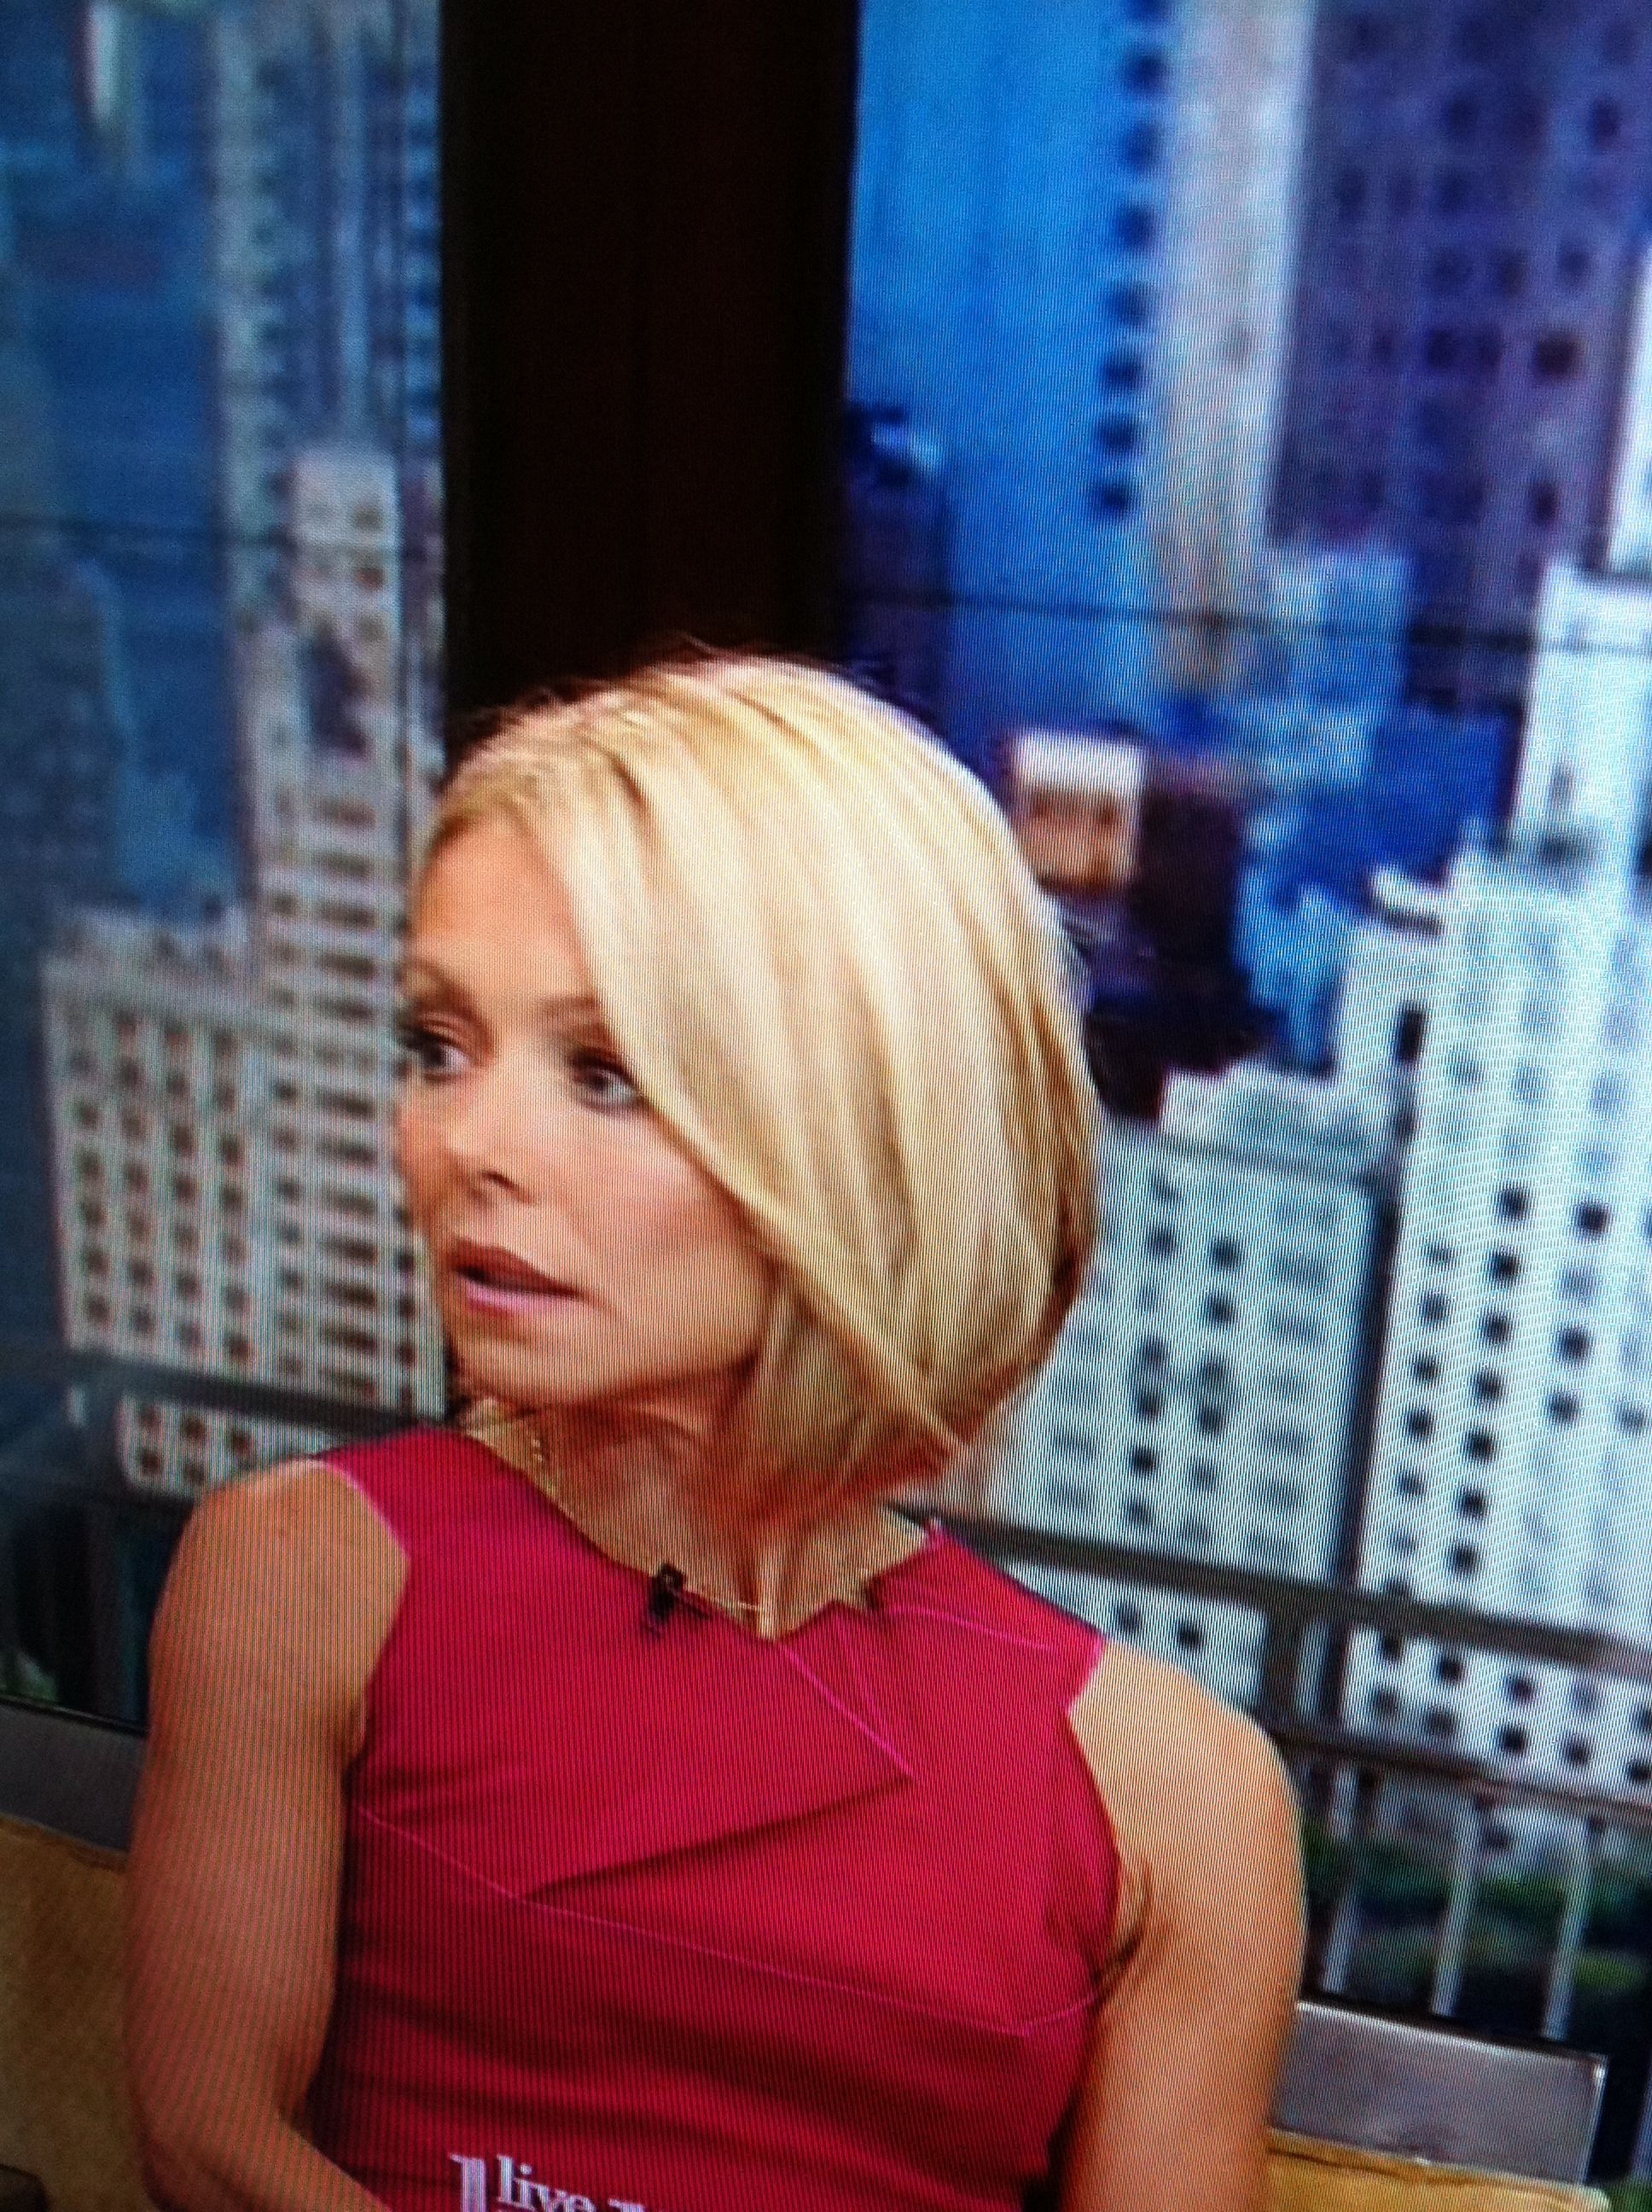 kelly ripa's new short hairhair cut is oct. 1how bout